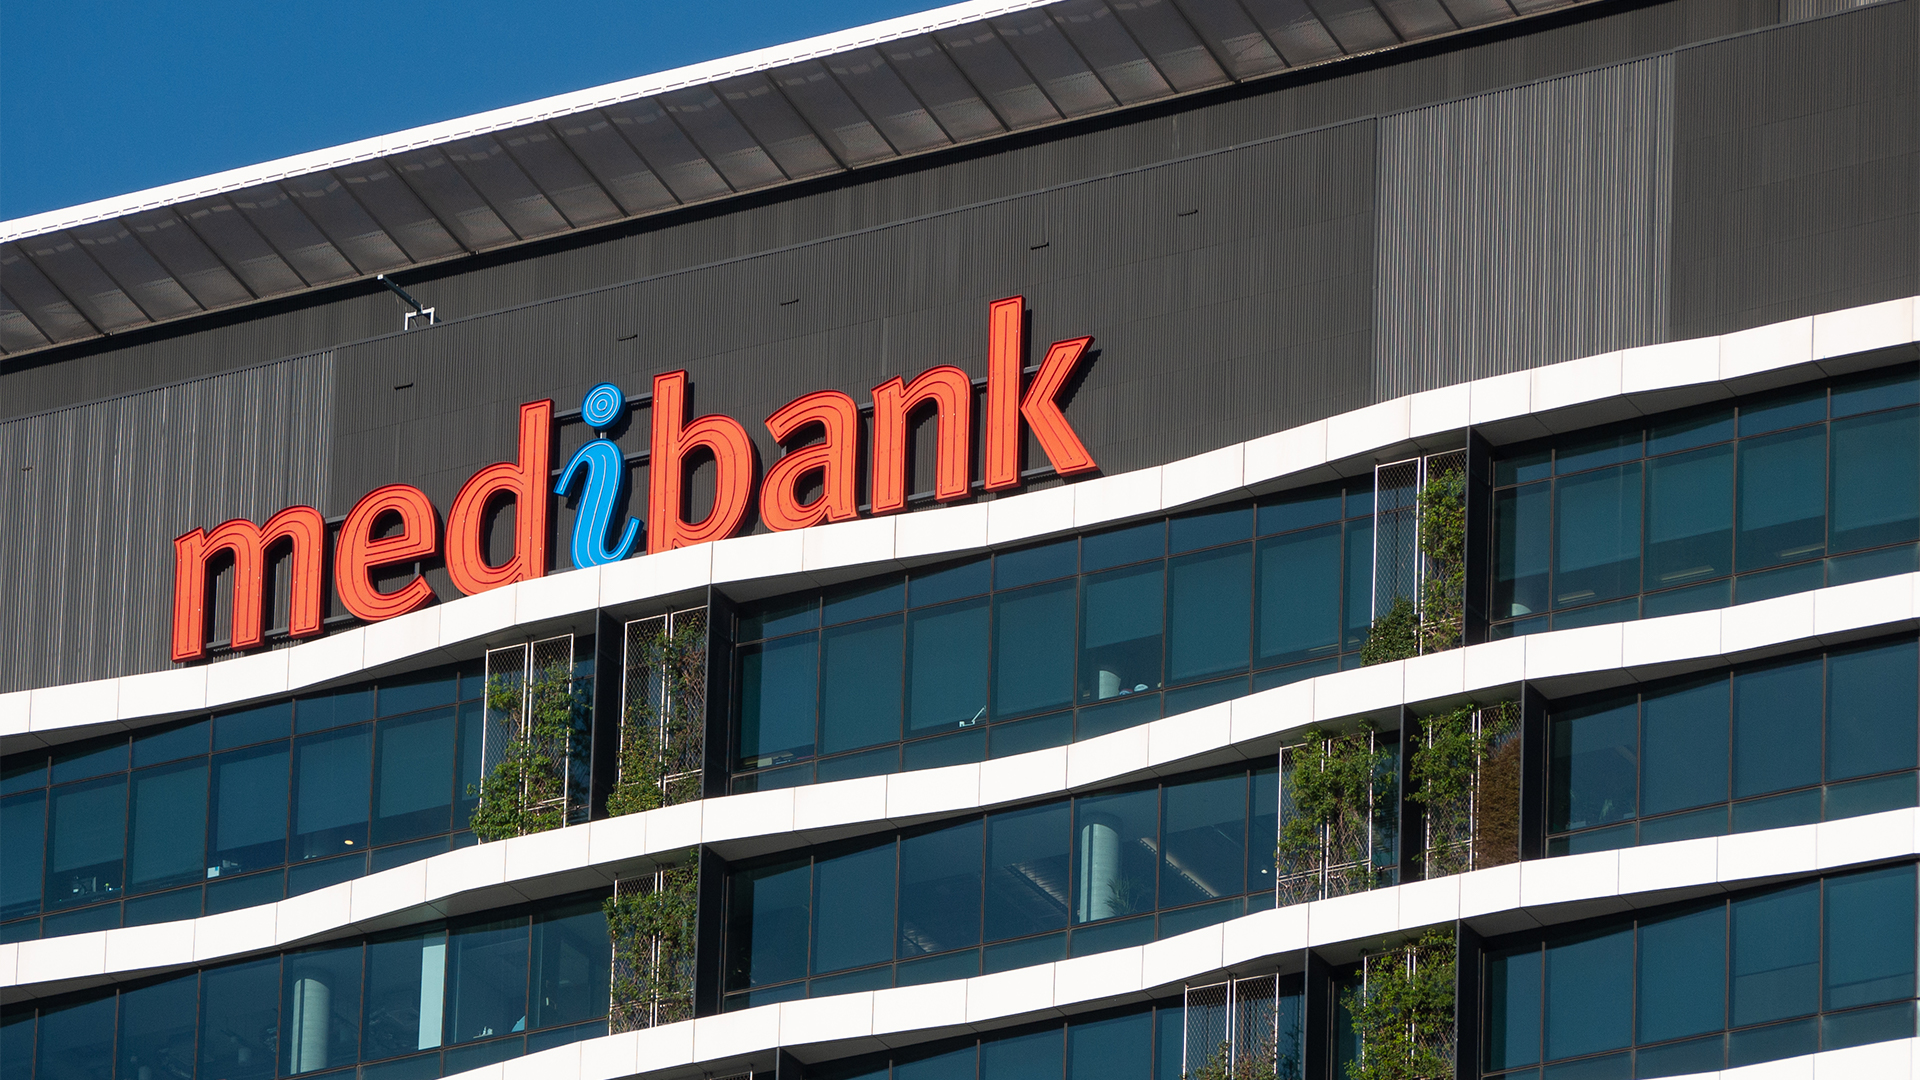 Medibank Private (ASX:MPL) FY20 outlook